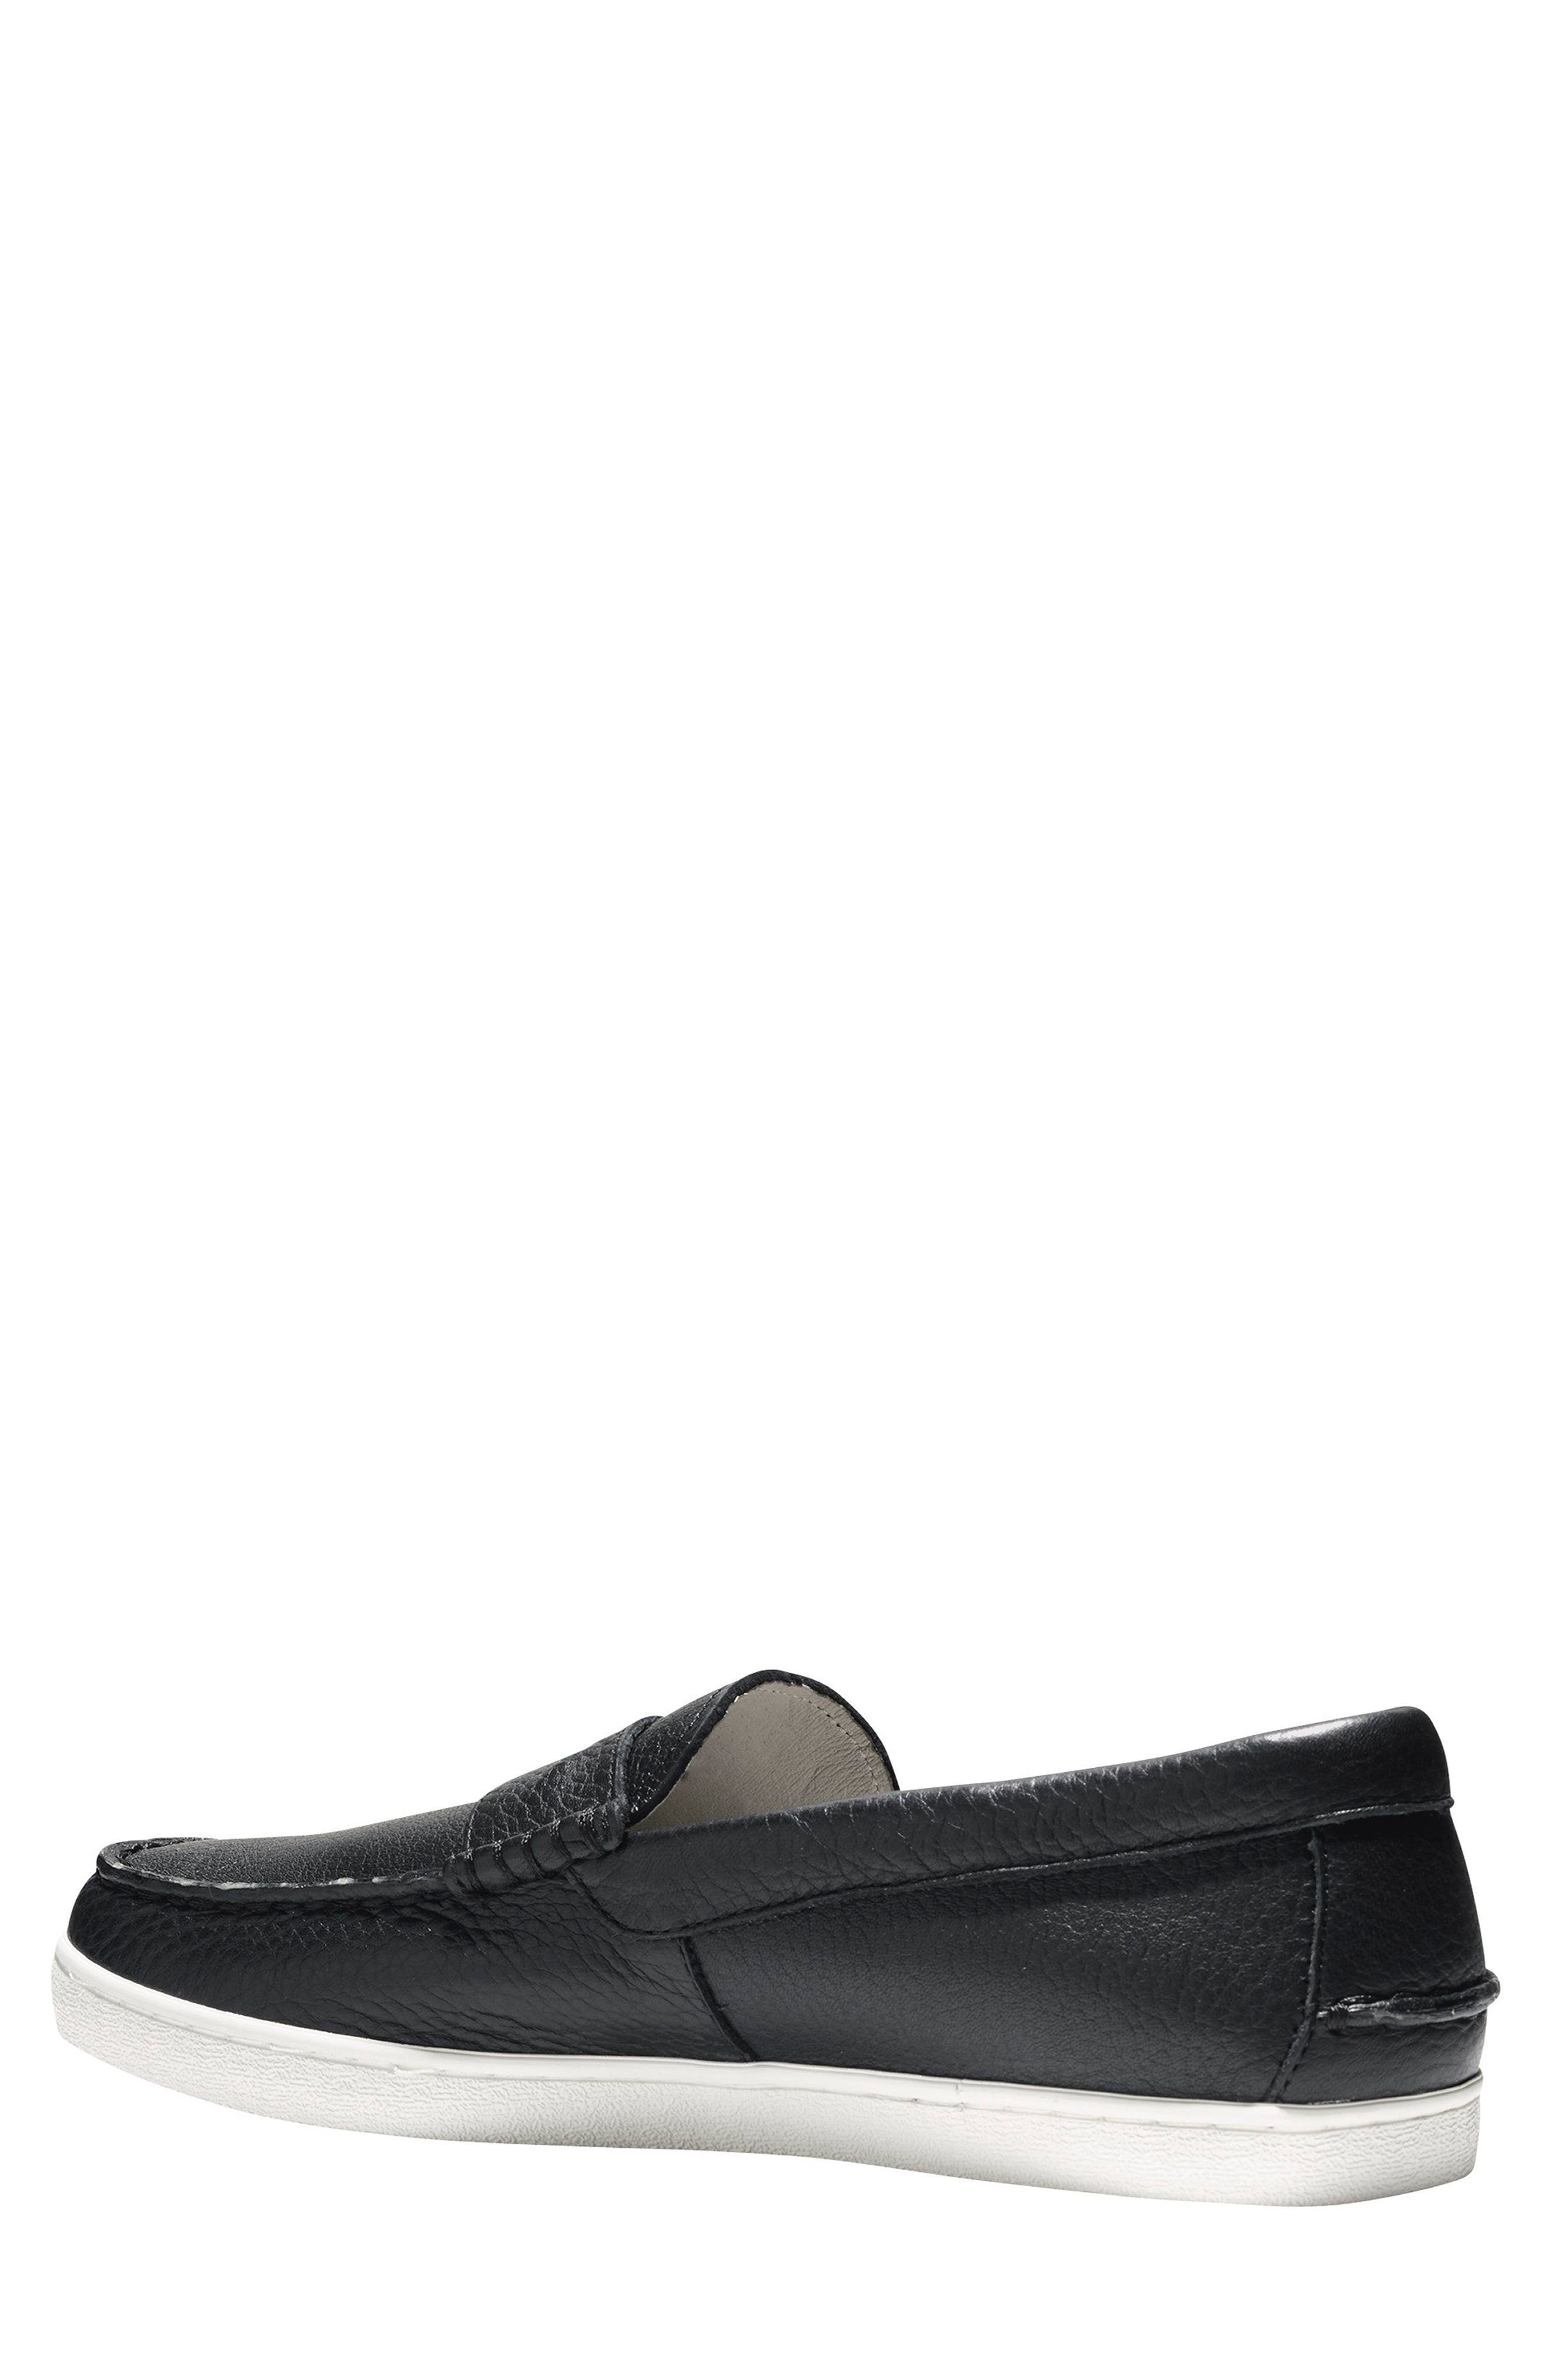 'Pinch' Penny Loafer,                             Alternate thumbnail 3, color,                             001